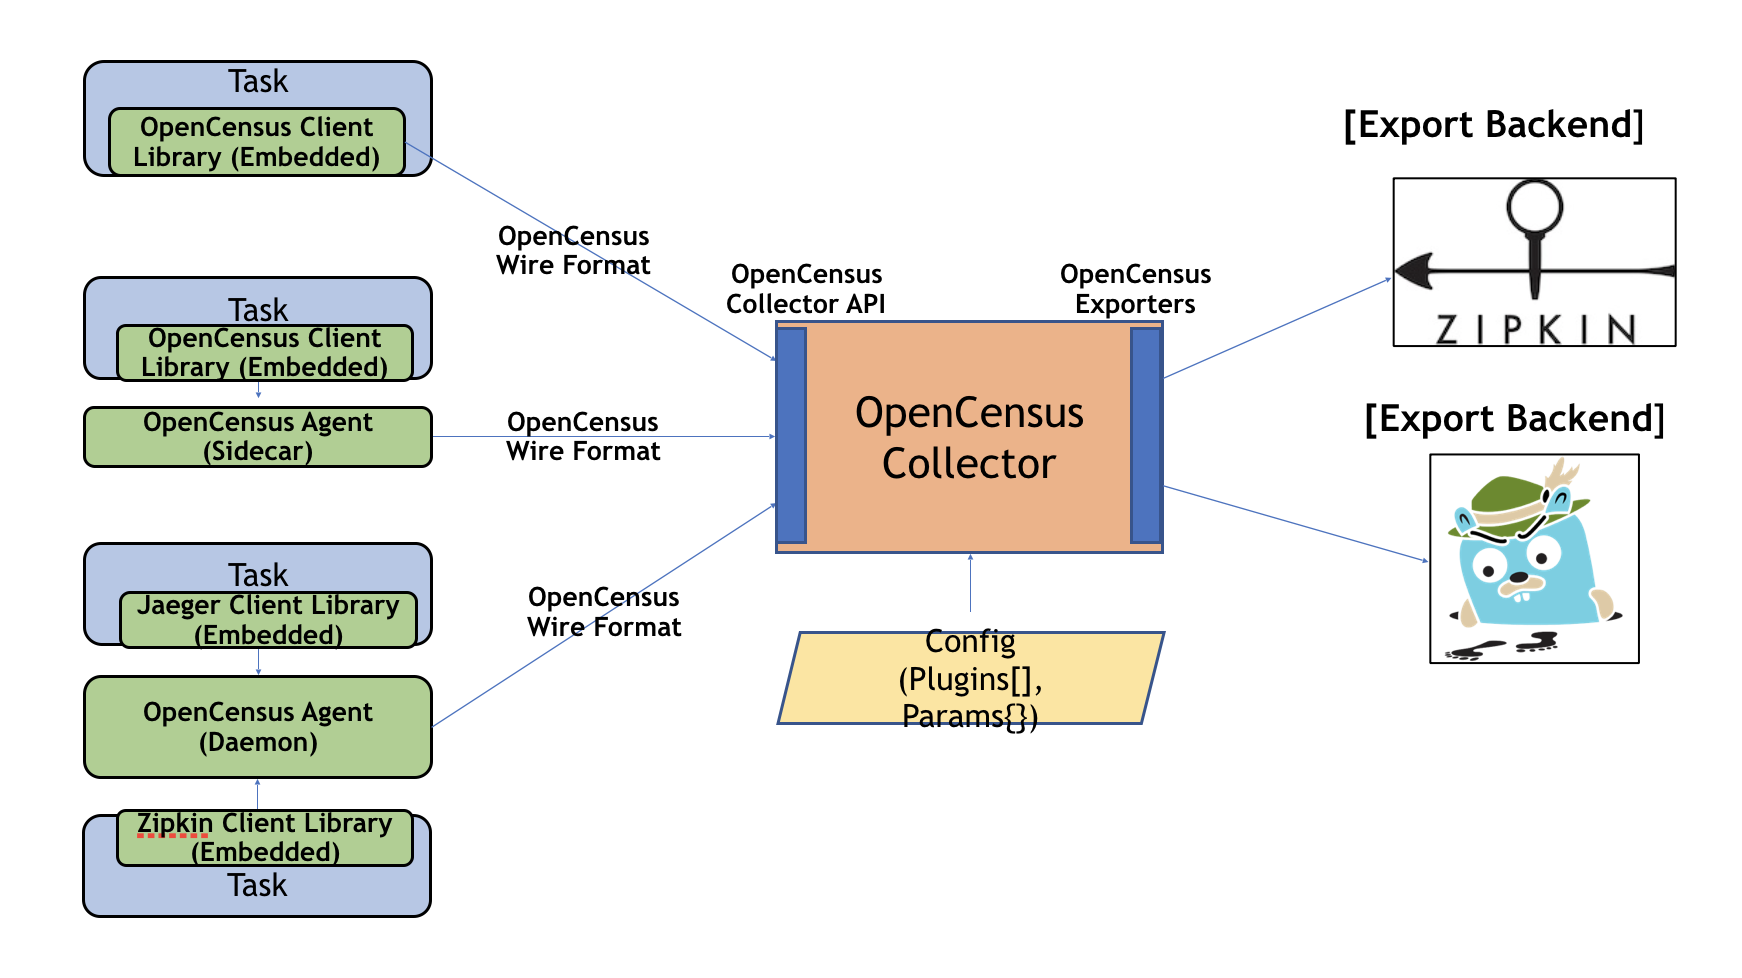 OpenCensus Collector Architecture